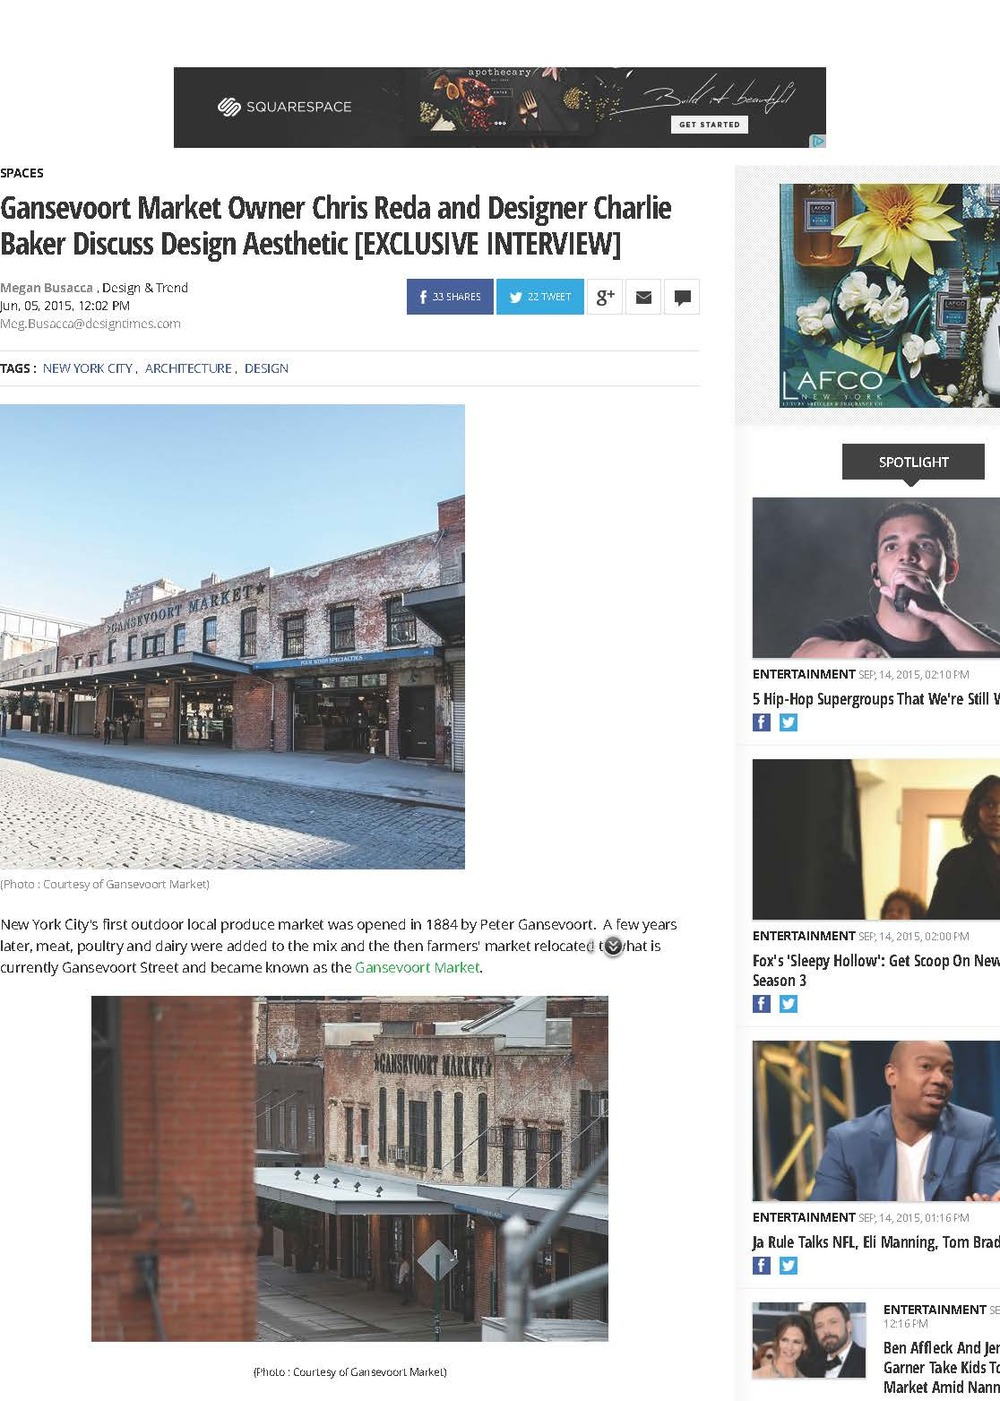 Gansevoort Market Owner Chris Reda and Designer Charlie Baker Discuss Design Aesthetic [EXCLUSIVE IN_Page_01.jpg